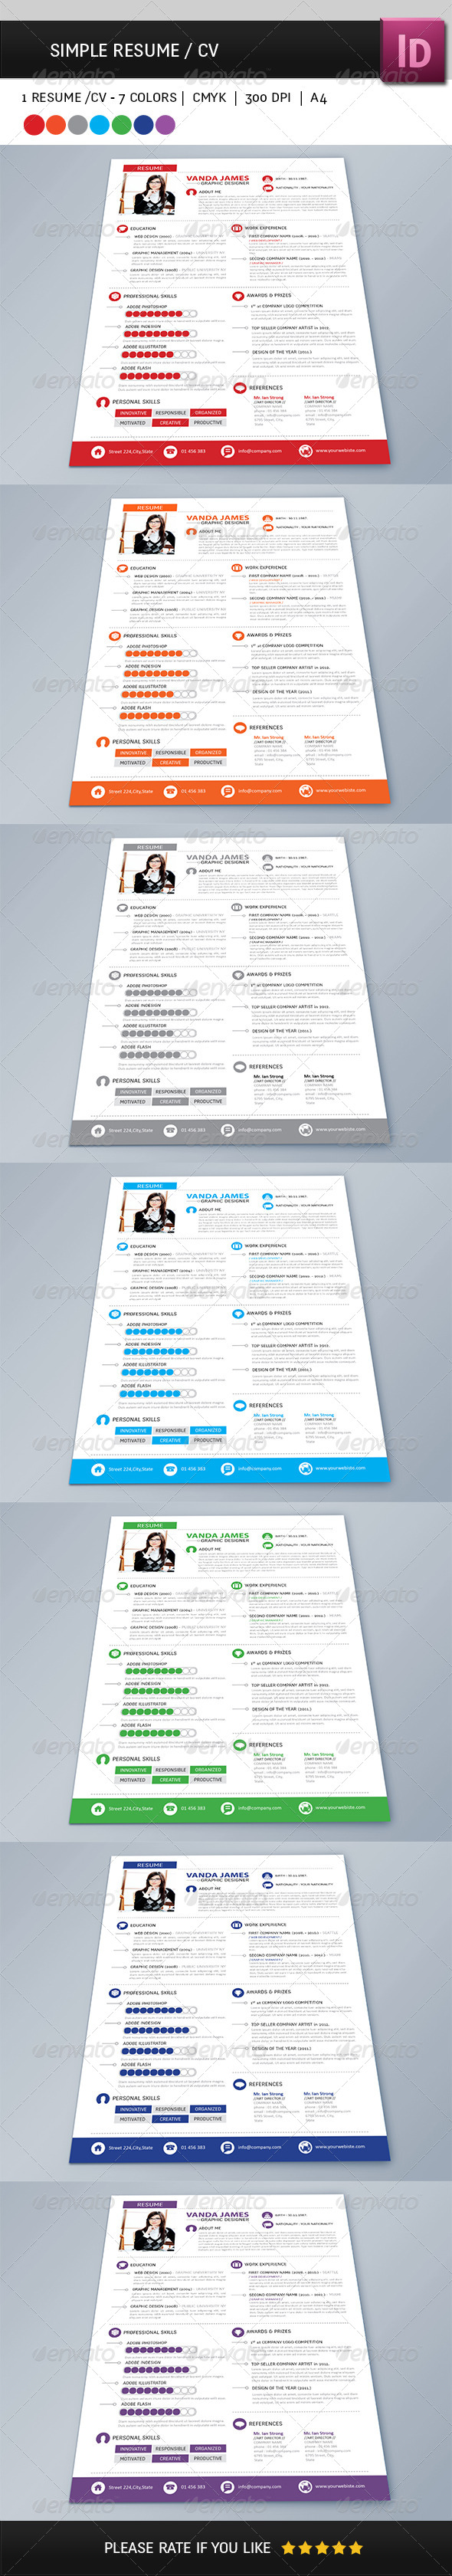 GraphicRiver Simple Resume CV 4058385